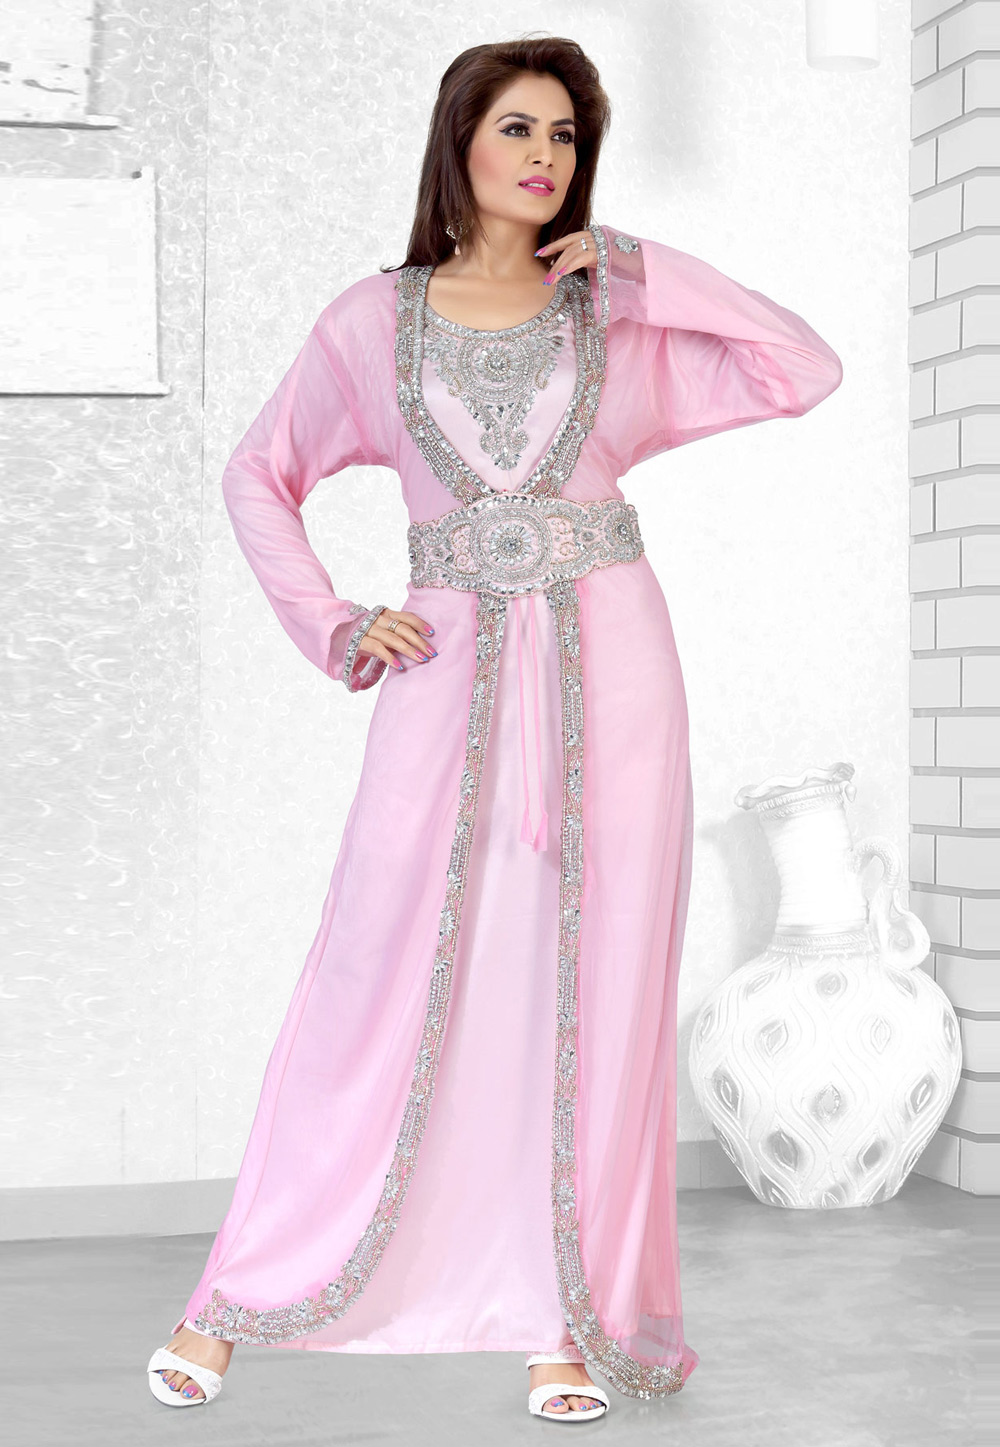 Pink Faux Georgette Embroidered Readymade Moroccan Kaftan 194508